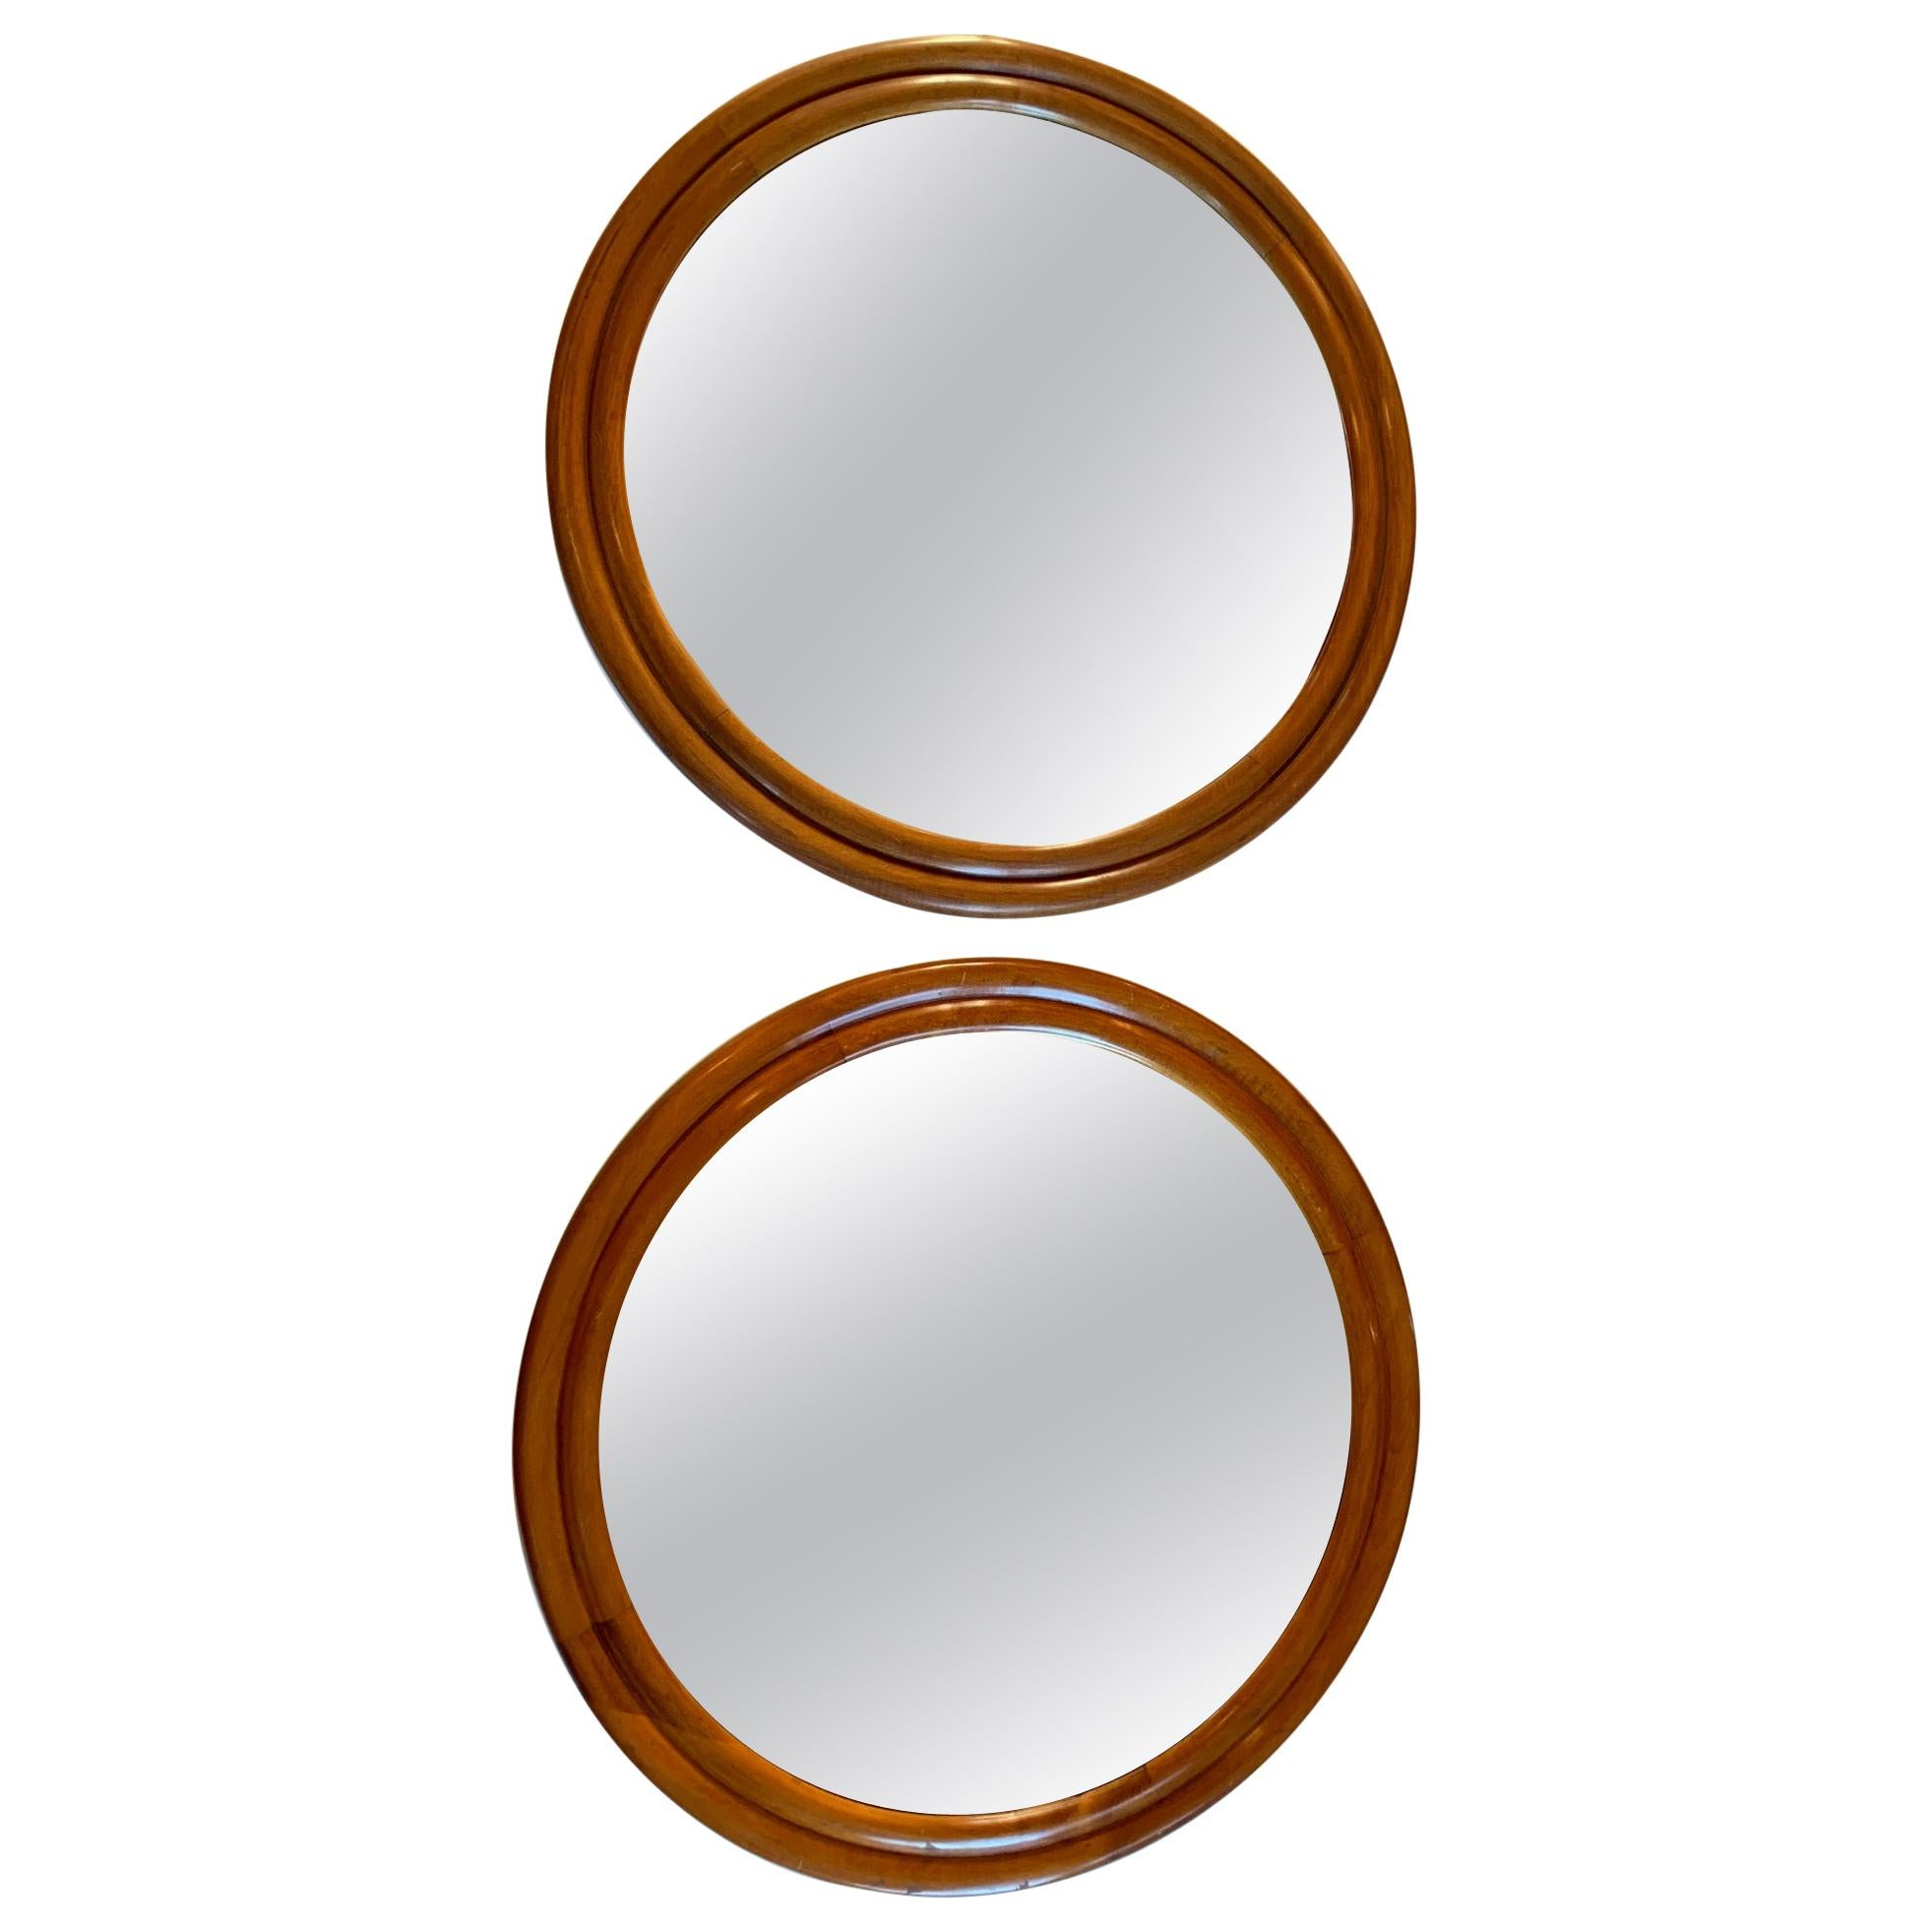 Pair Of Large Wood Framed Round Mirrors Mid 20th Century For Sale At 1stdibs